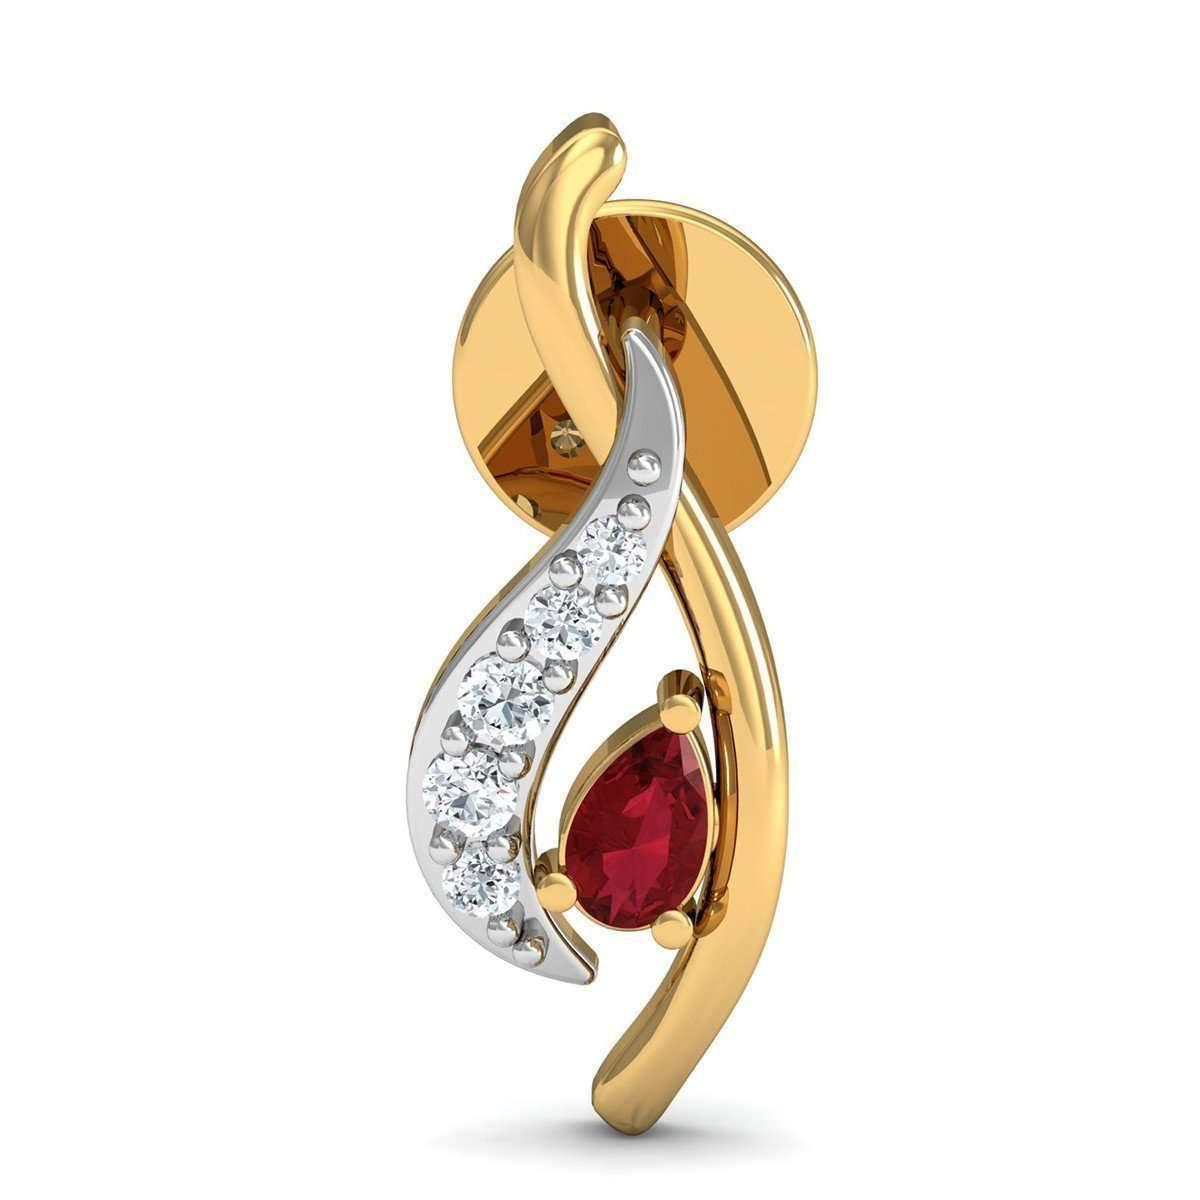 Diamoire Jewels Prong set pear shaped Ruby and SI3 Diamond Nature Inspired Earrings MzwN9RLw9